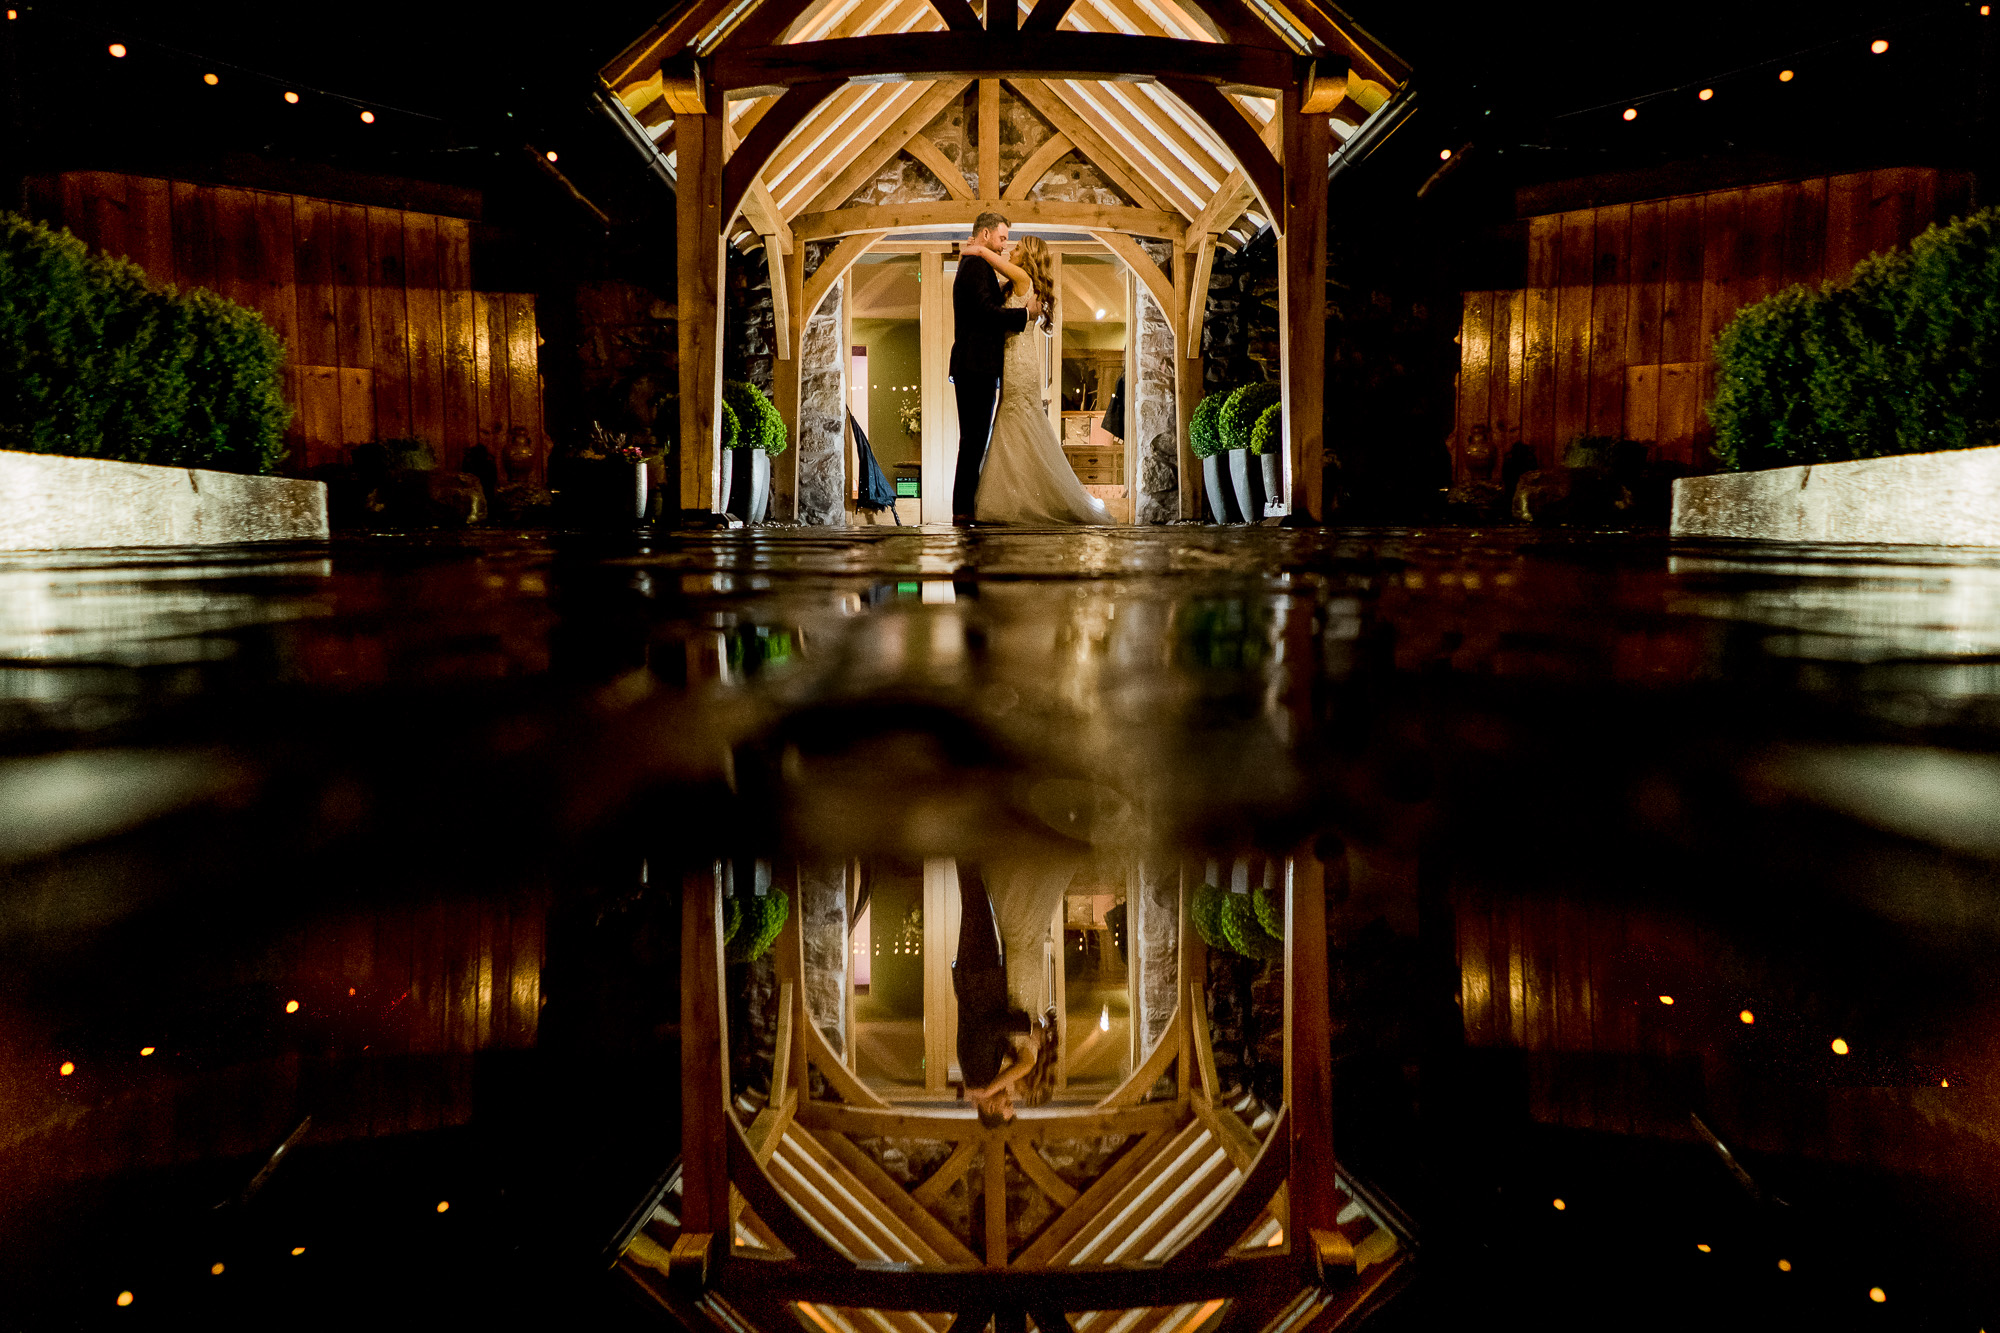 Tower Hill Barn Wedding Photographer based in north west england (7 of 7).jpg